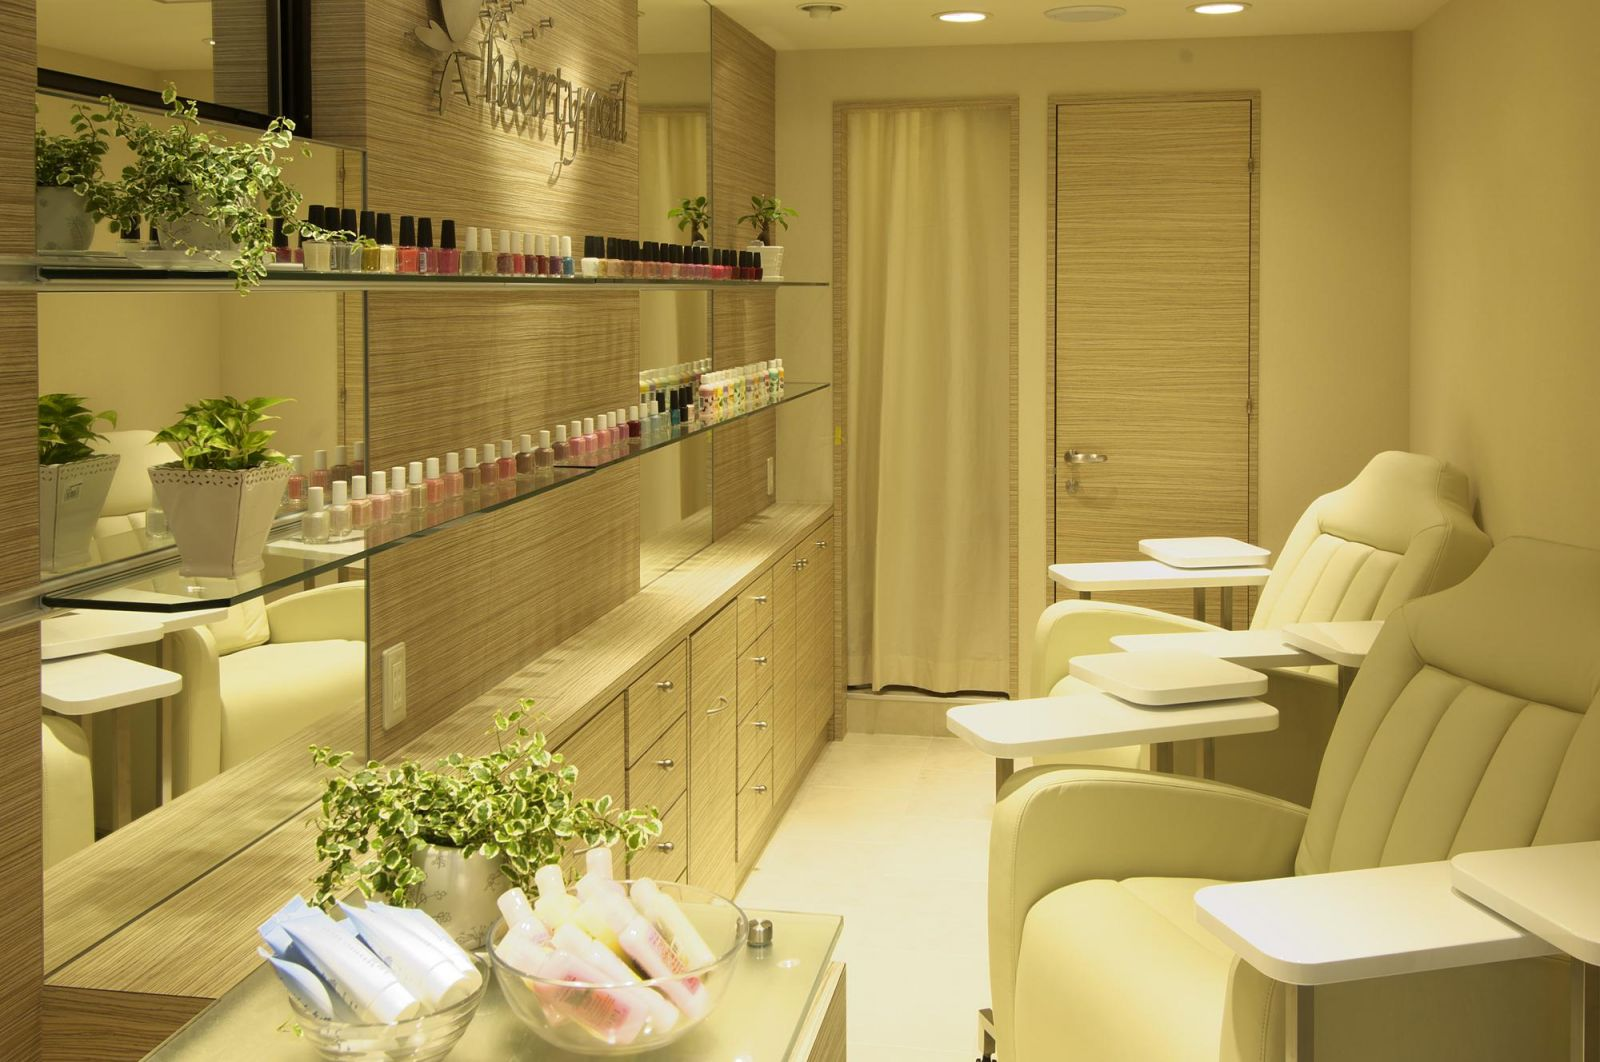 hearty nail ハーティーネイル自由が丘南口店